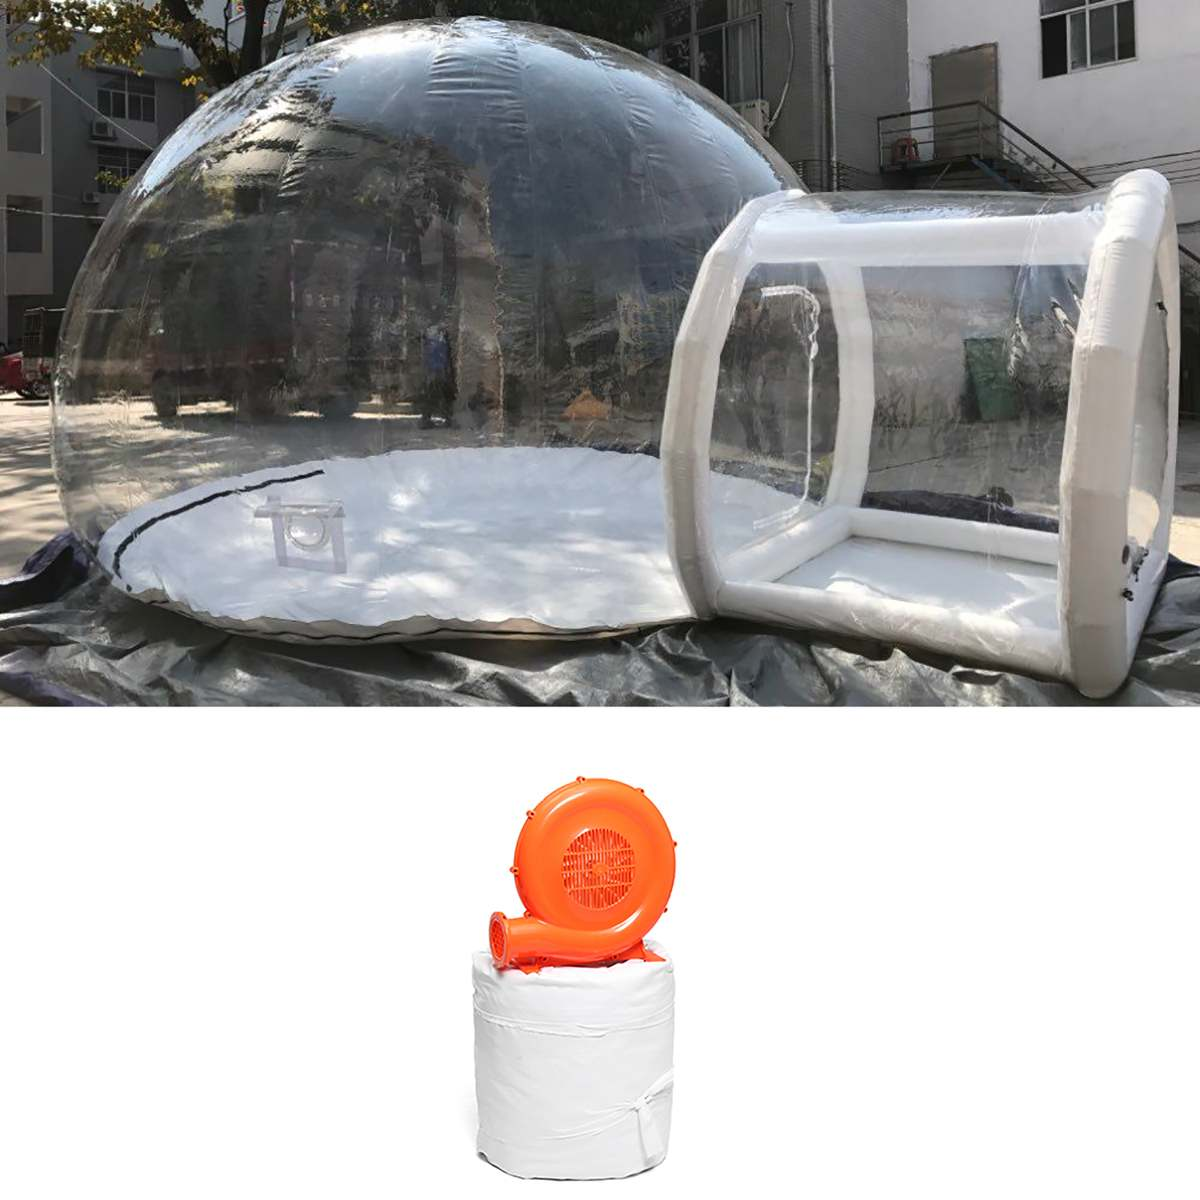 3/4/5 m 10/13/16ft Camping En Plein Air tente gonflable bubble Grand bricolage Maison Dôme Camping Cabine lodge Air Bulle tente transparente